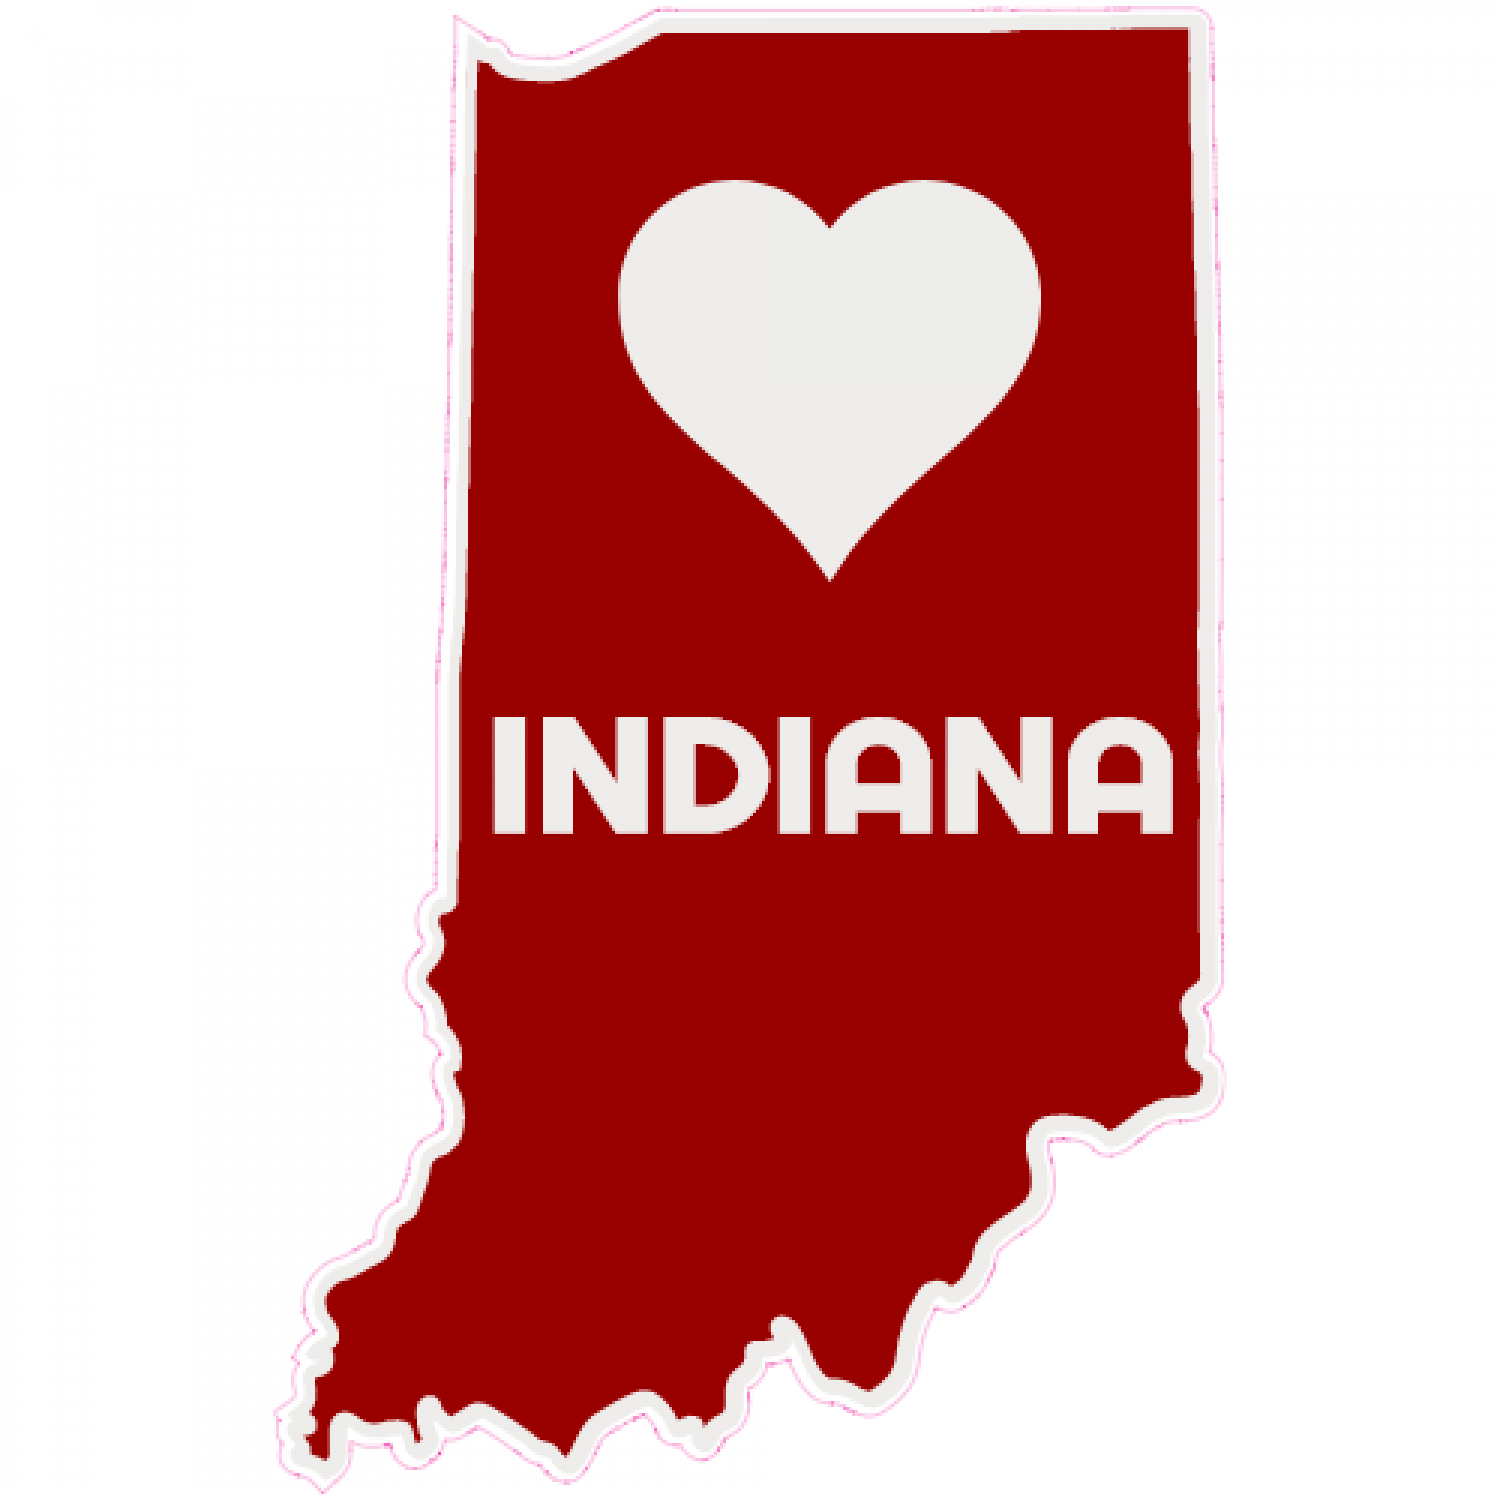 Indiana-Heart-State-Shaped-Sticker (1)